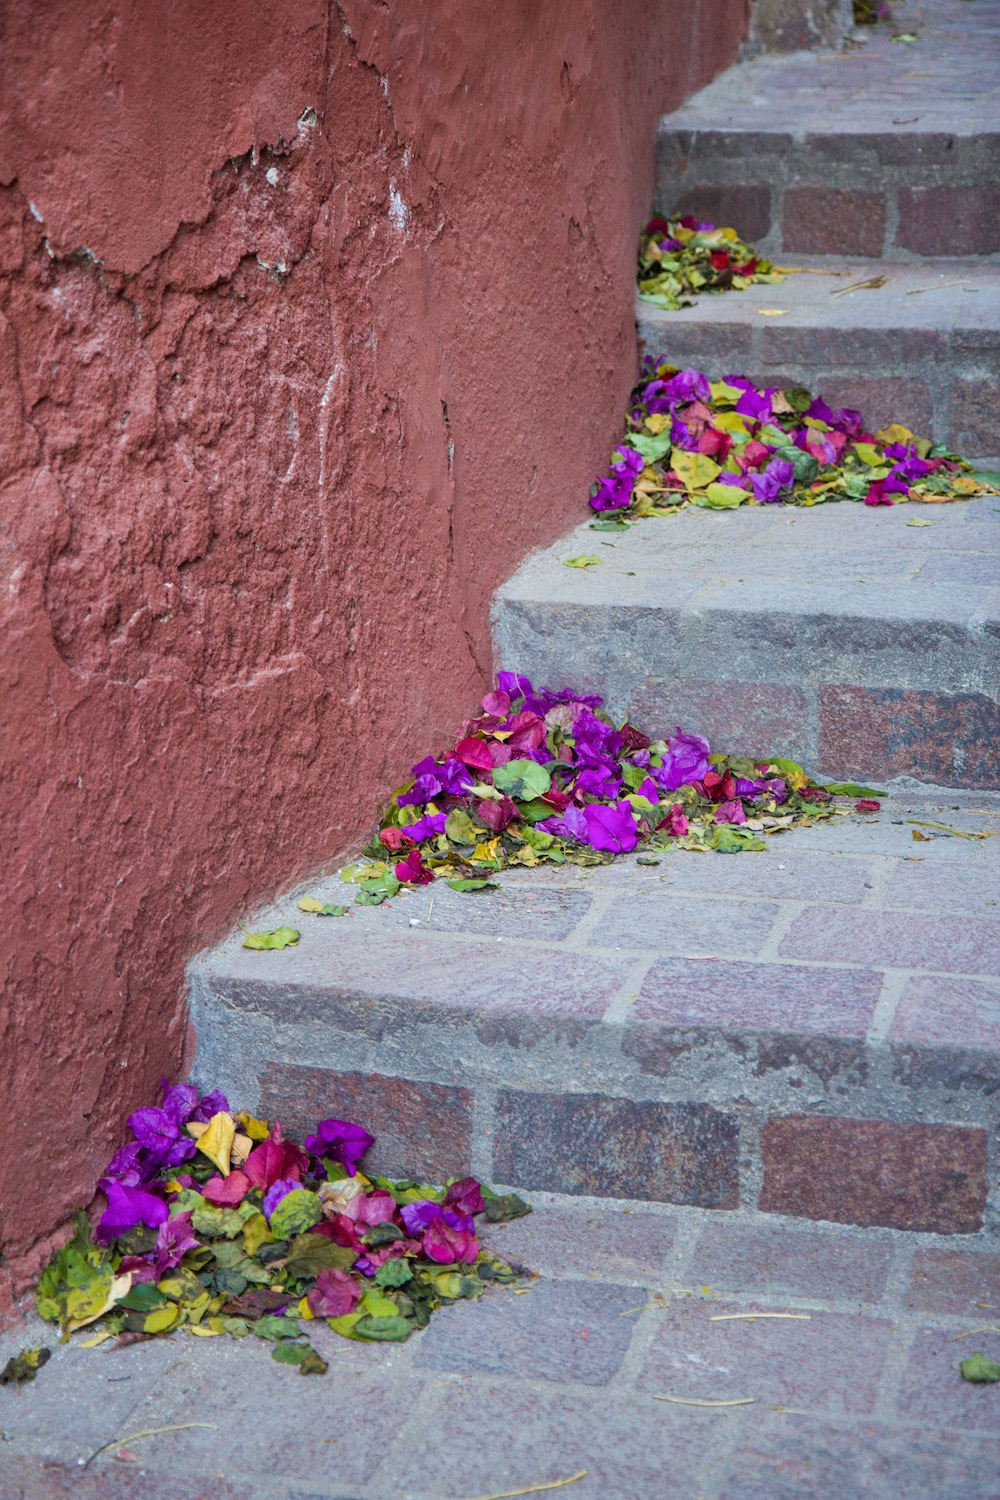 photo essay guanajuato planet bell flowers on street